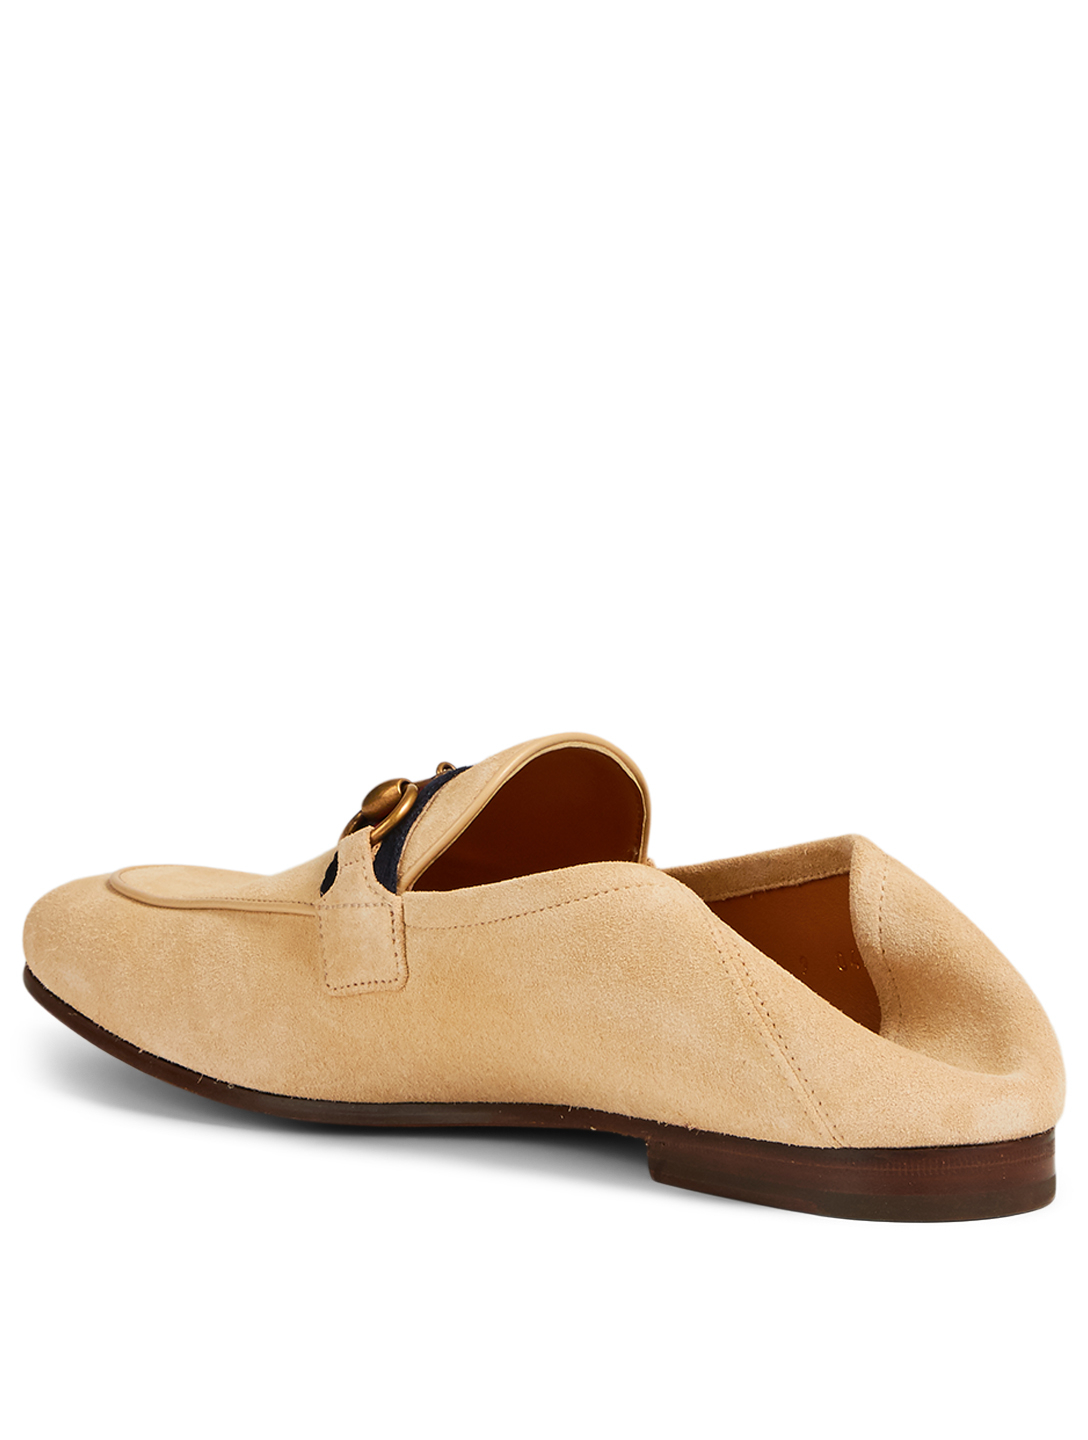 GUCCI Suede Horsebit Loafers With Web Men's Beige